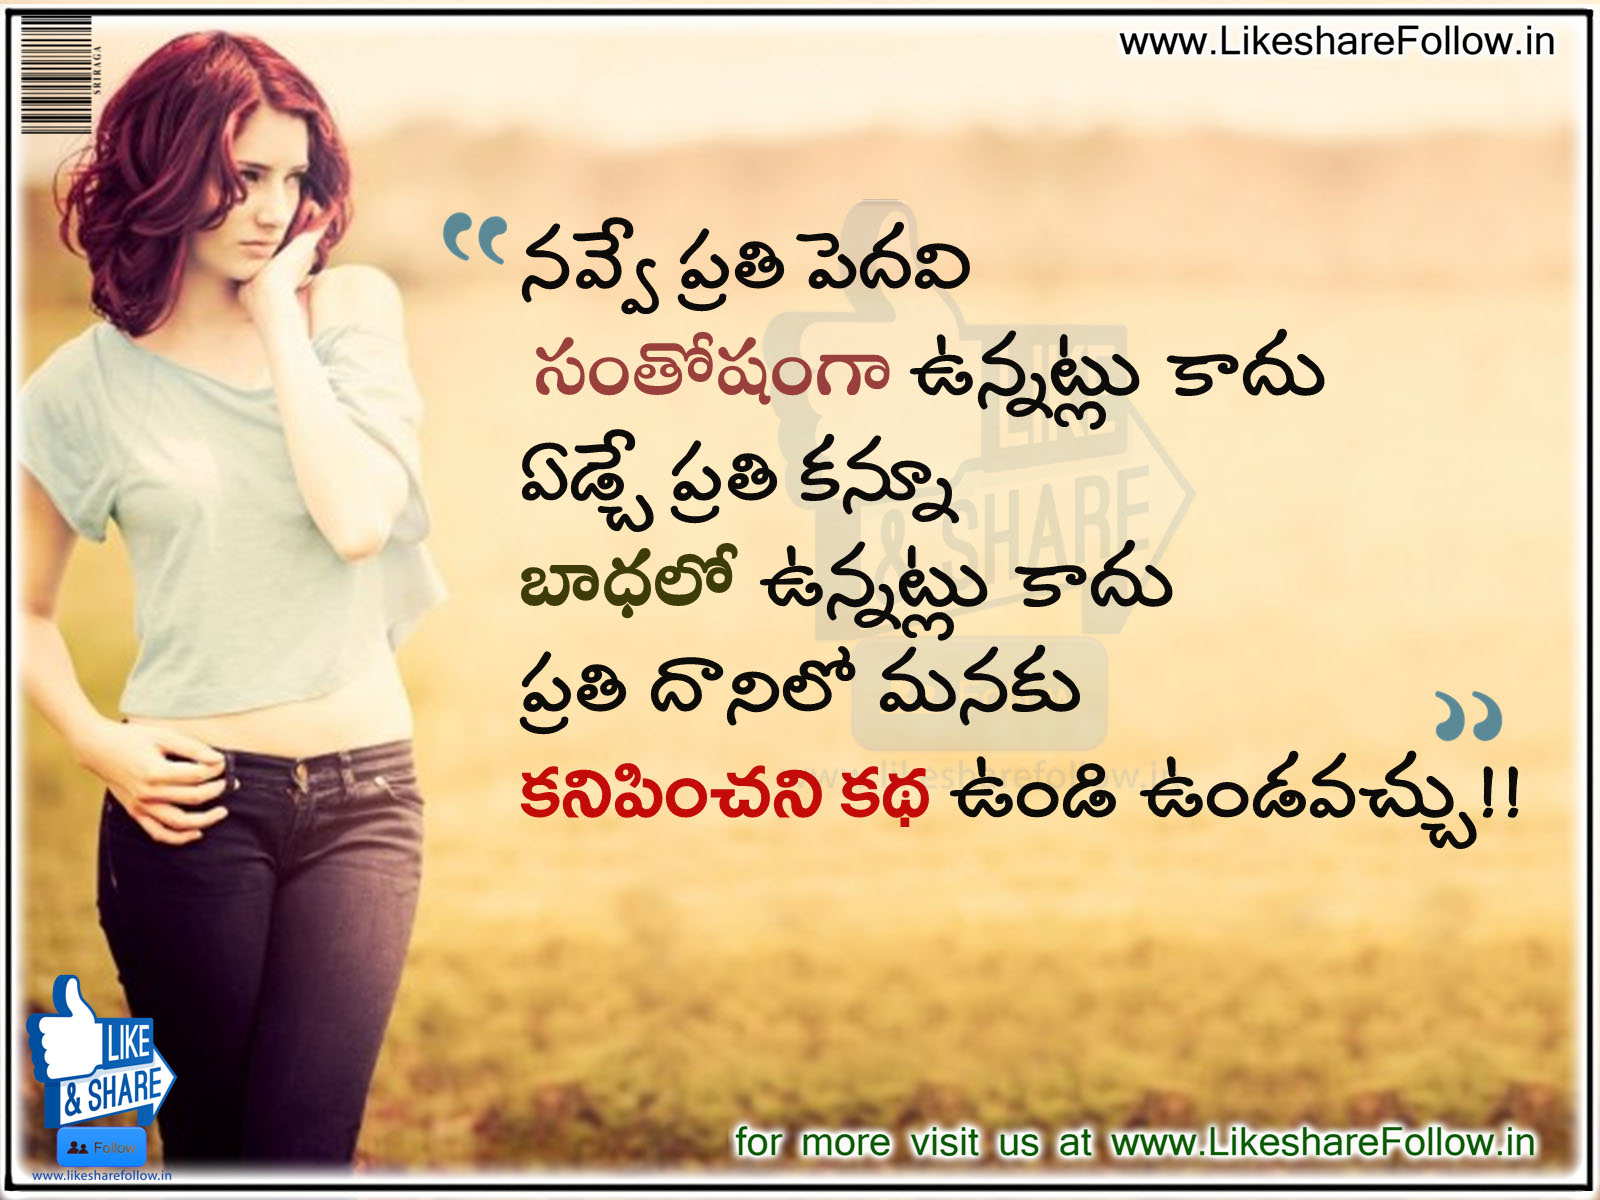 Latest Good Night Quotes Wishes In Telugu Like Share Follow